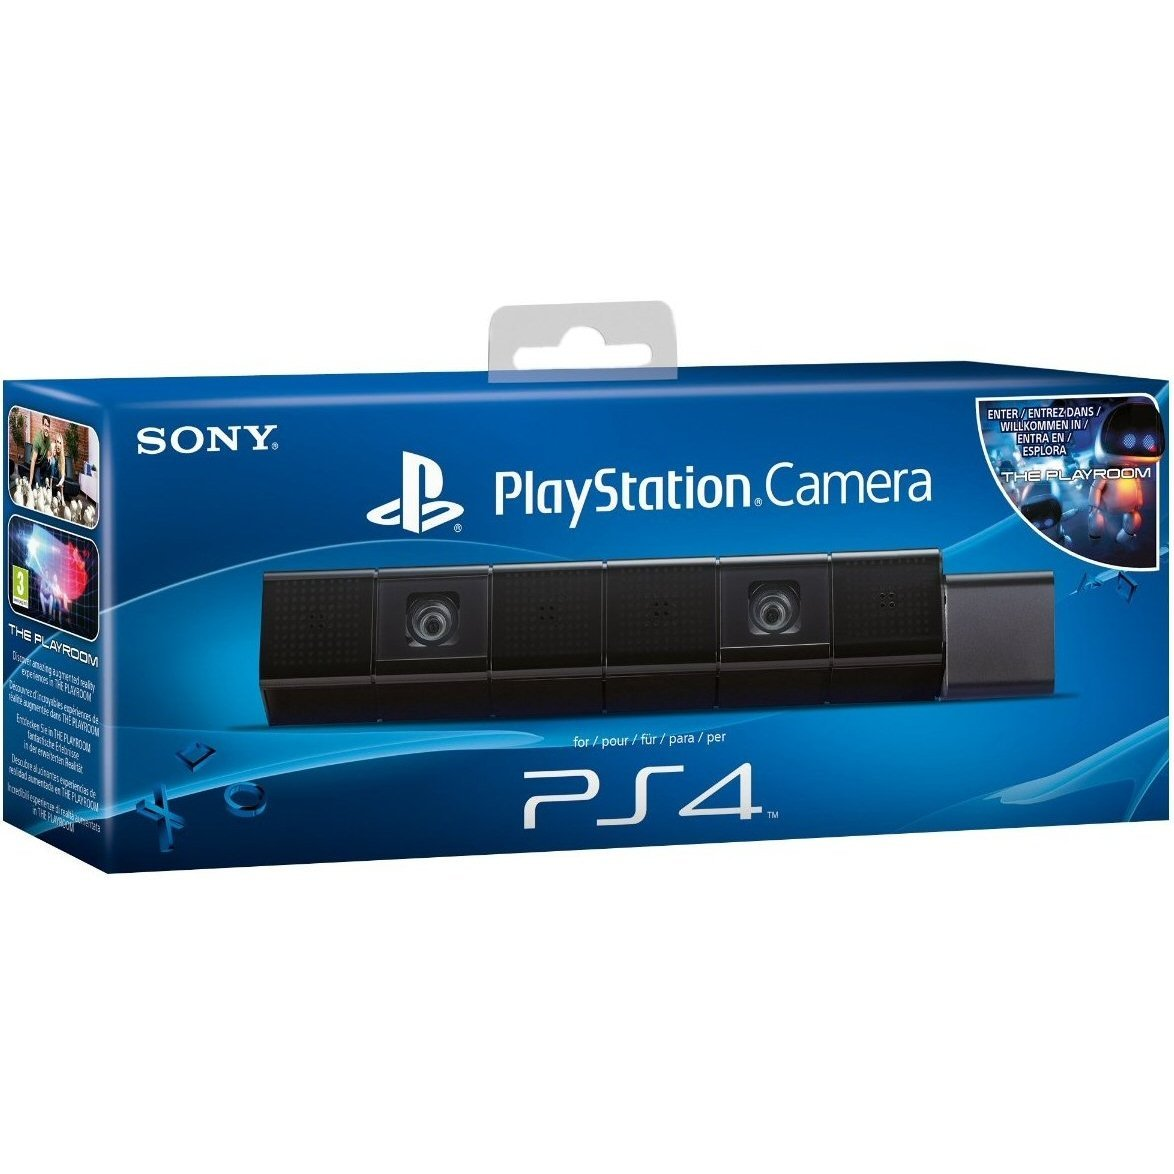 Playstation Camera Ps4 Elevenia Flyman Menamp039s Army Top Atasan Kaos Fma 3178 Multi Colour